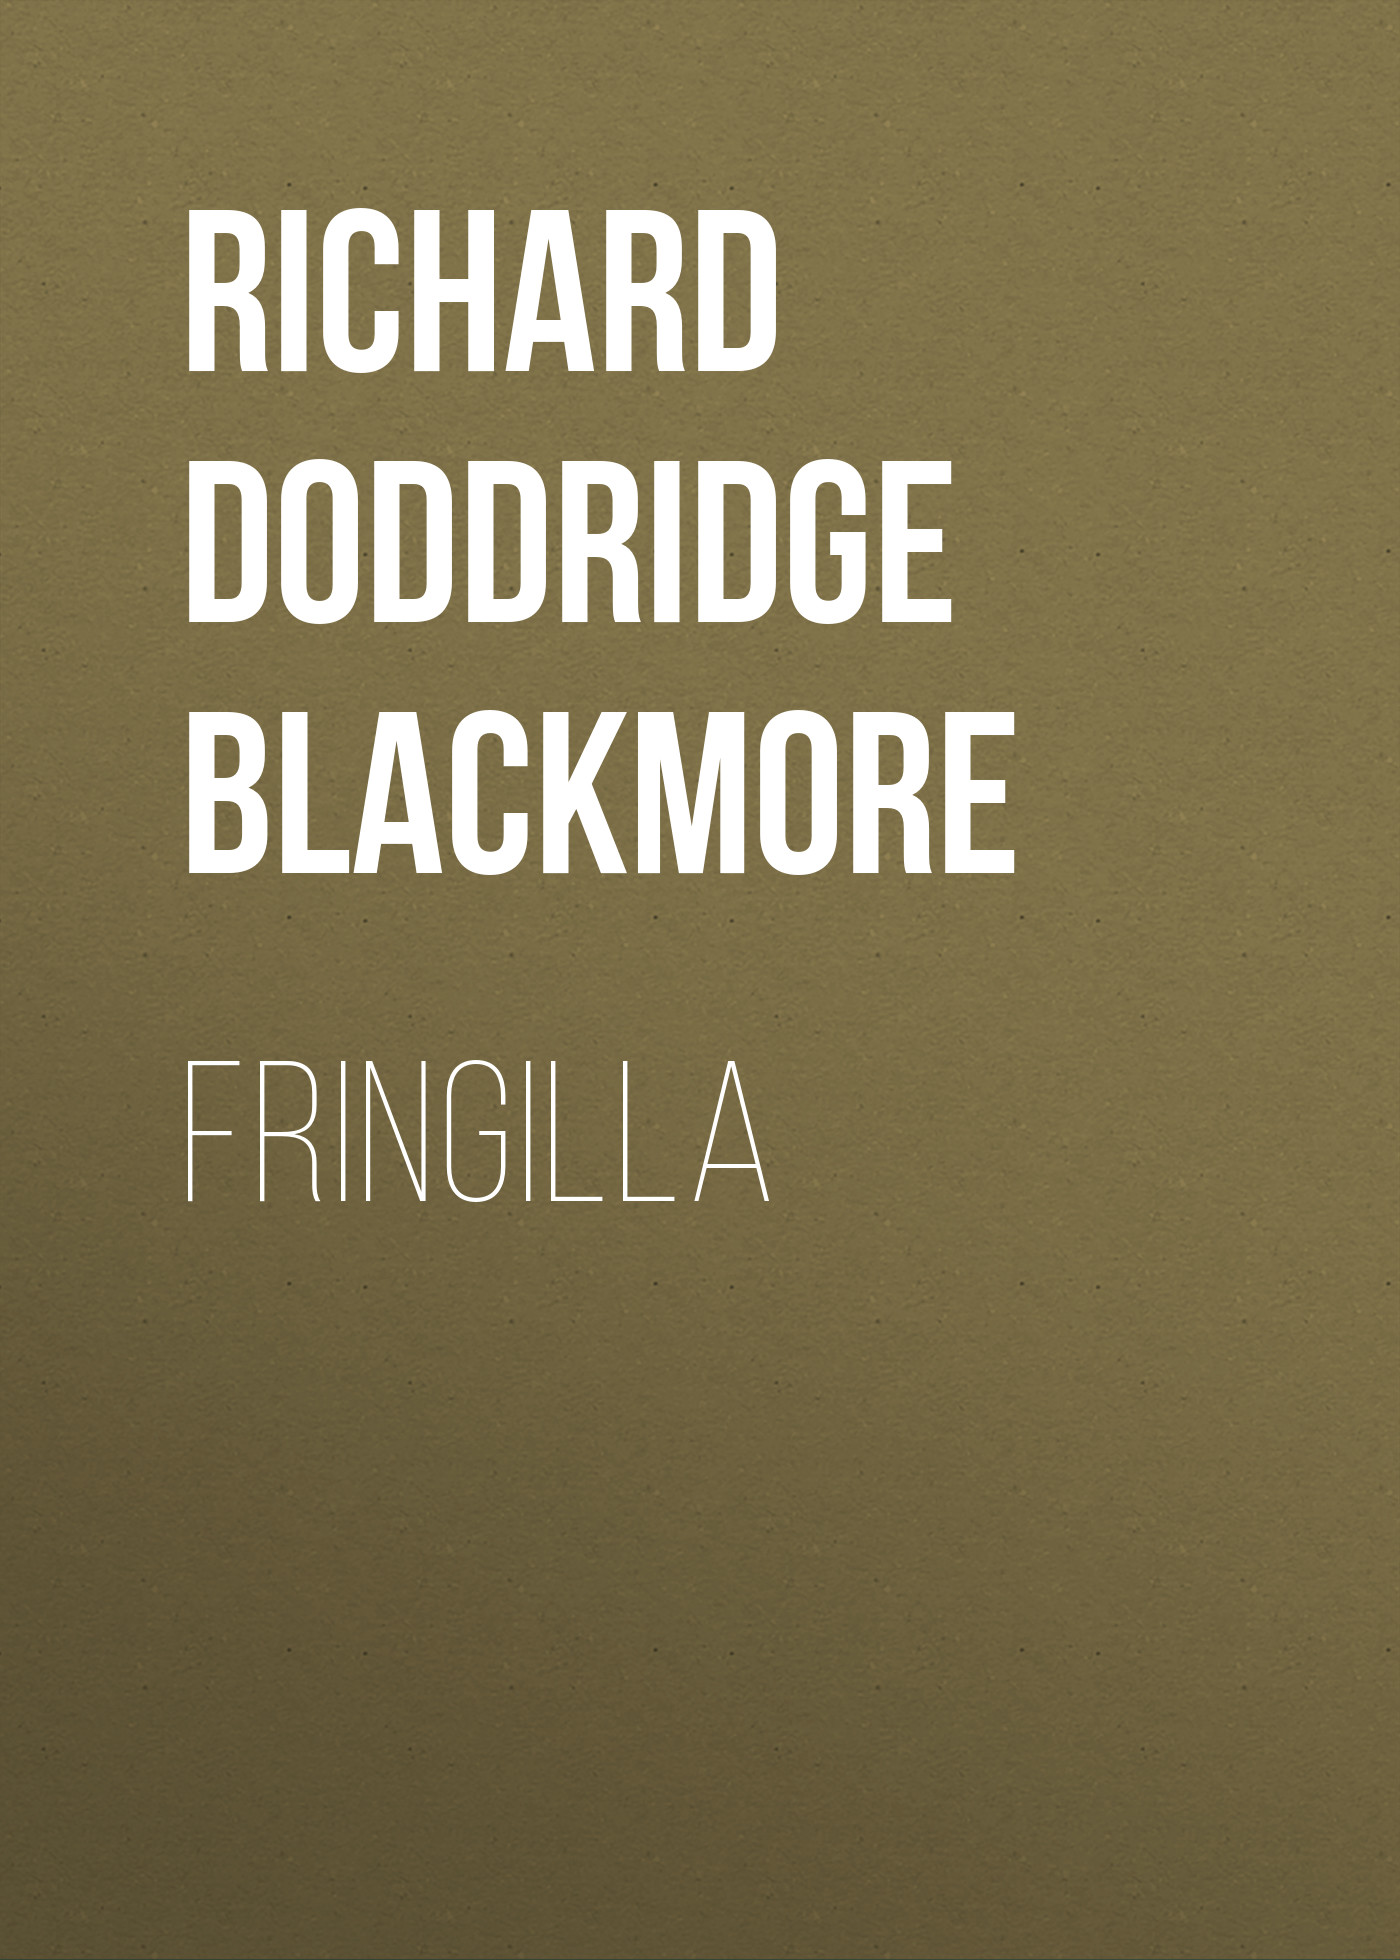 Richard Doddridge Blackmore Fringilla цена 2017